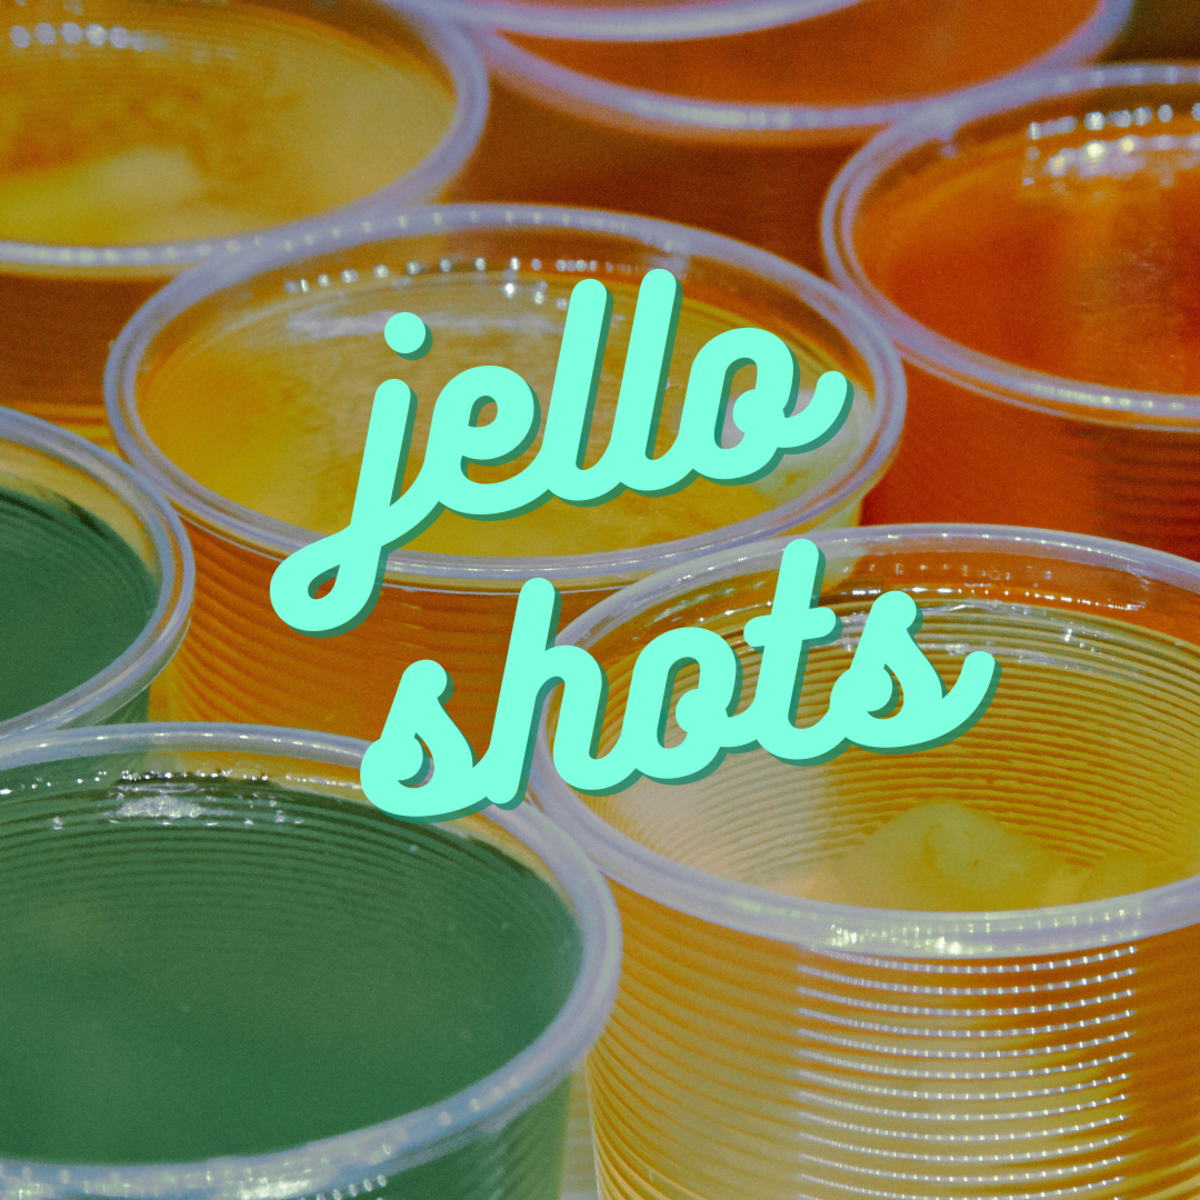 Get creative and fun with these party-ready jello shot recipes!